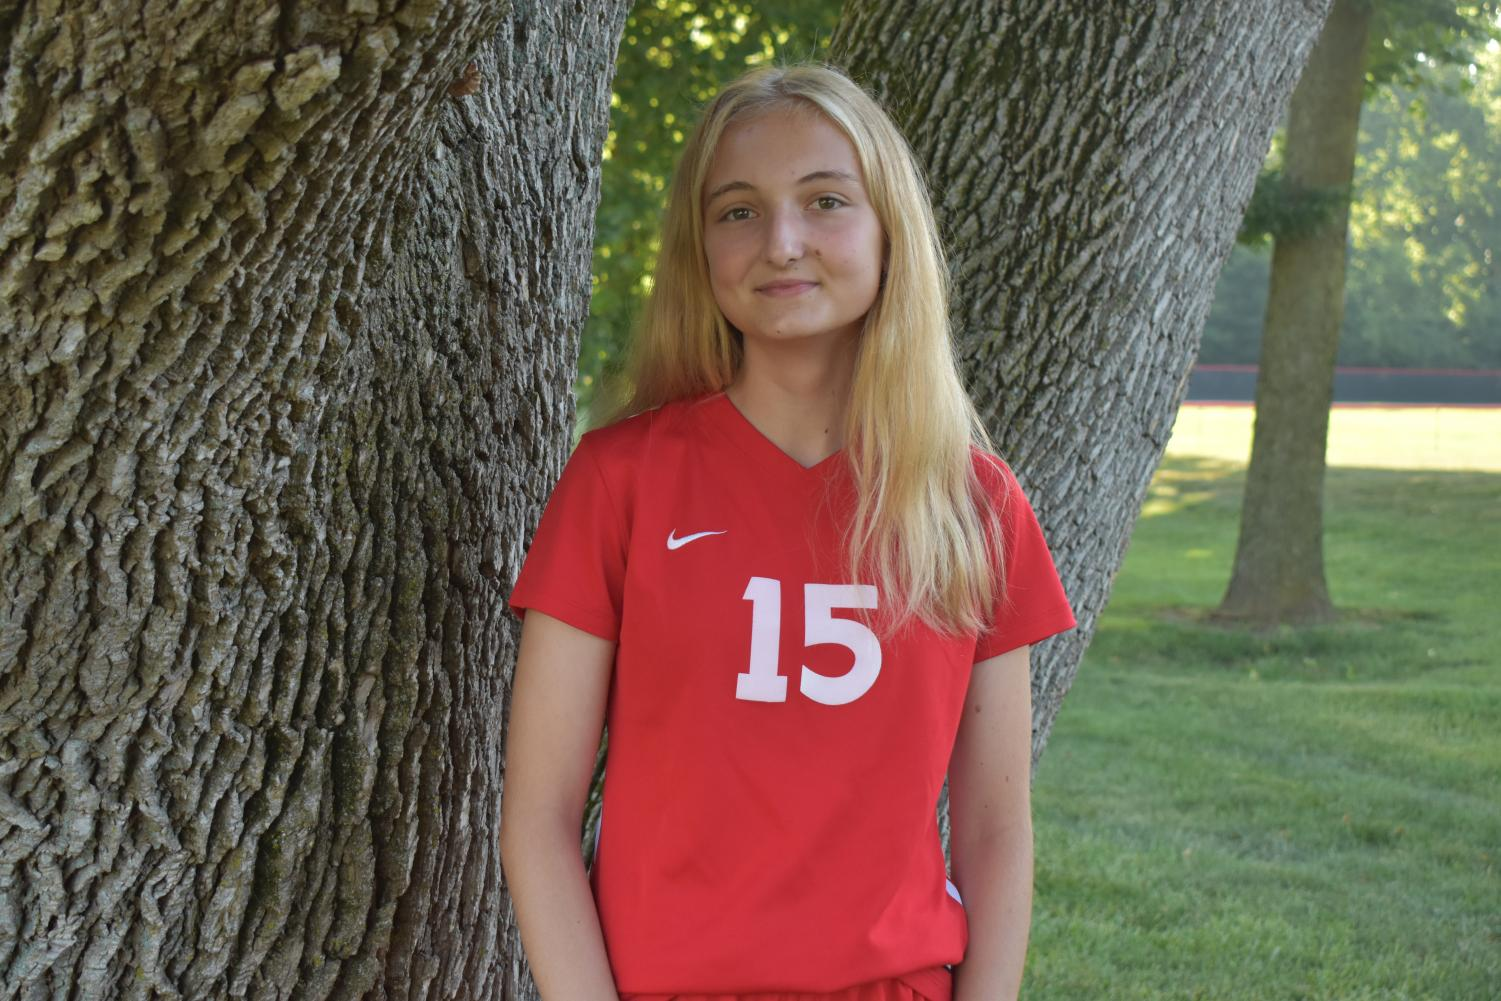 Nadja Hadzialagic is a foreign exchange student playing on the JV soccer team.